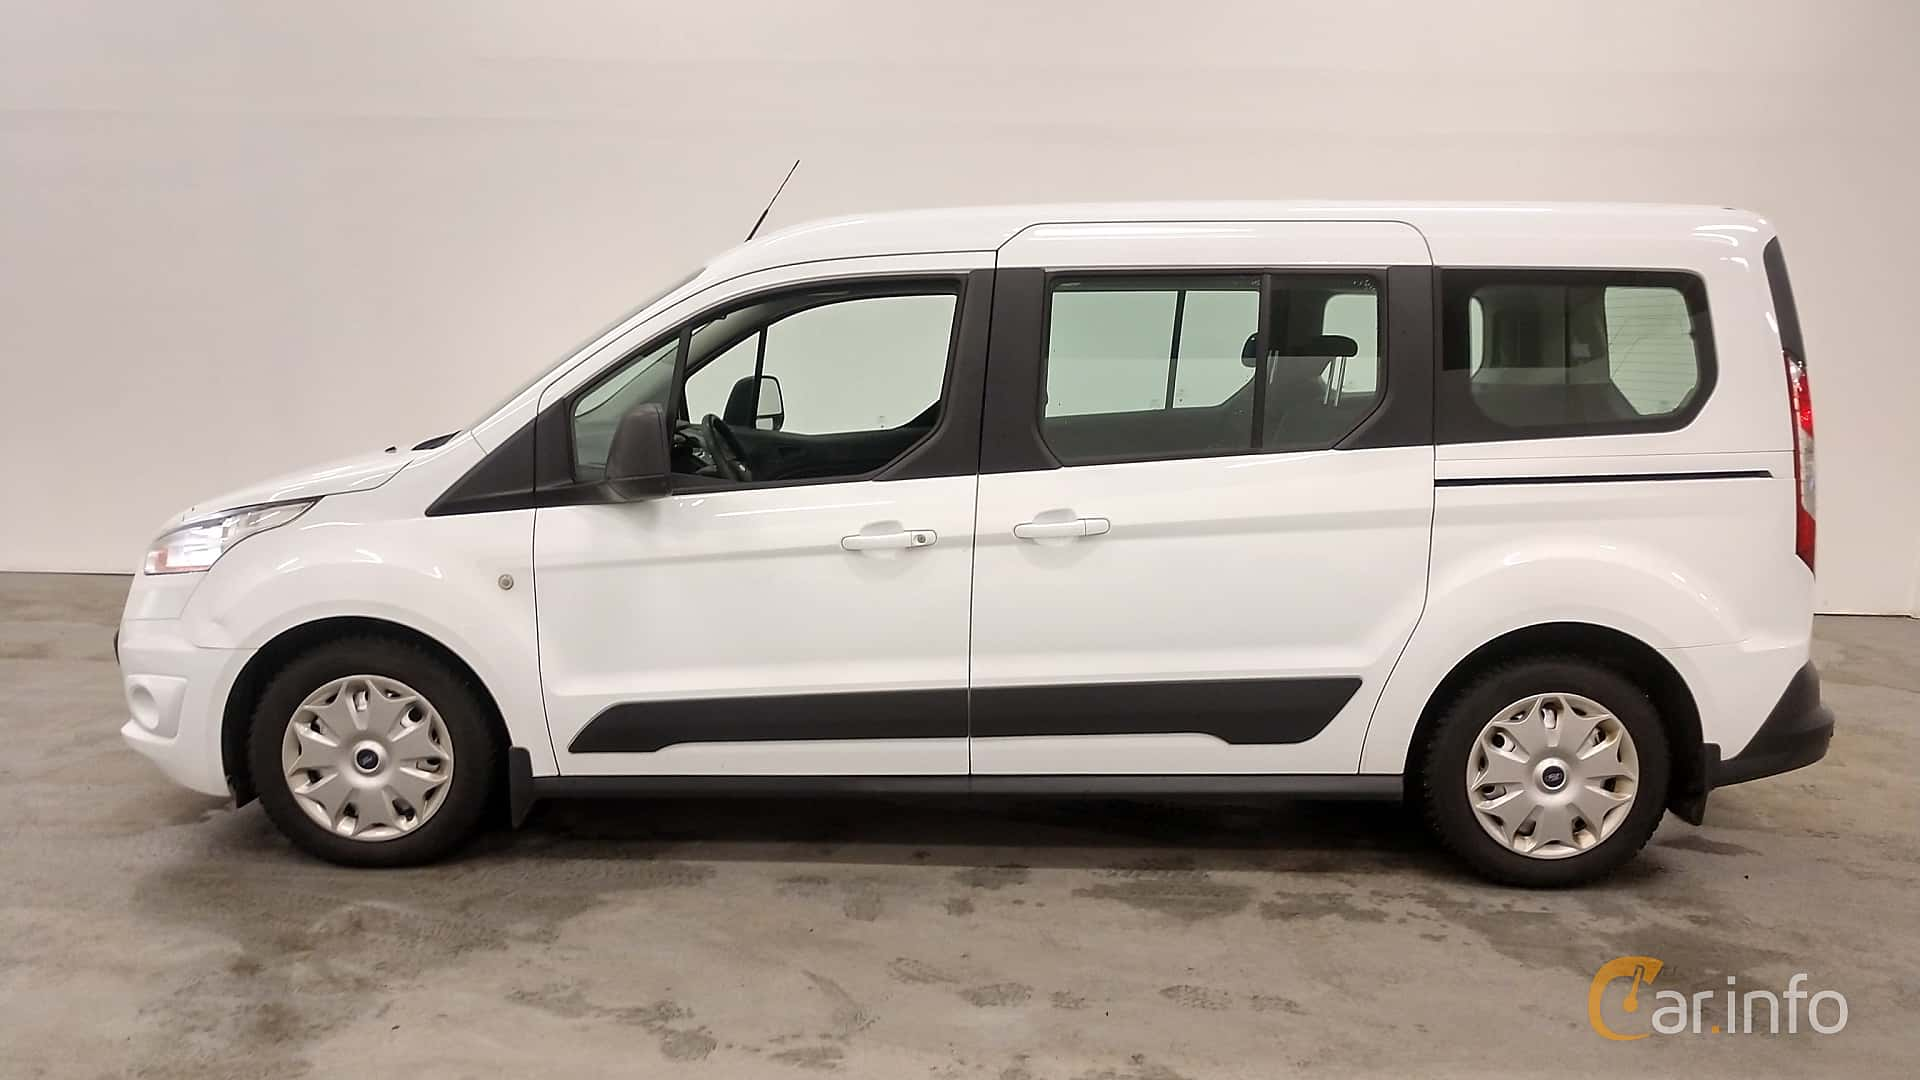 Ford Tourneo Connect LWB 1.6 TDCi Manual, 95hp, 2015